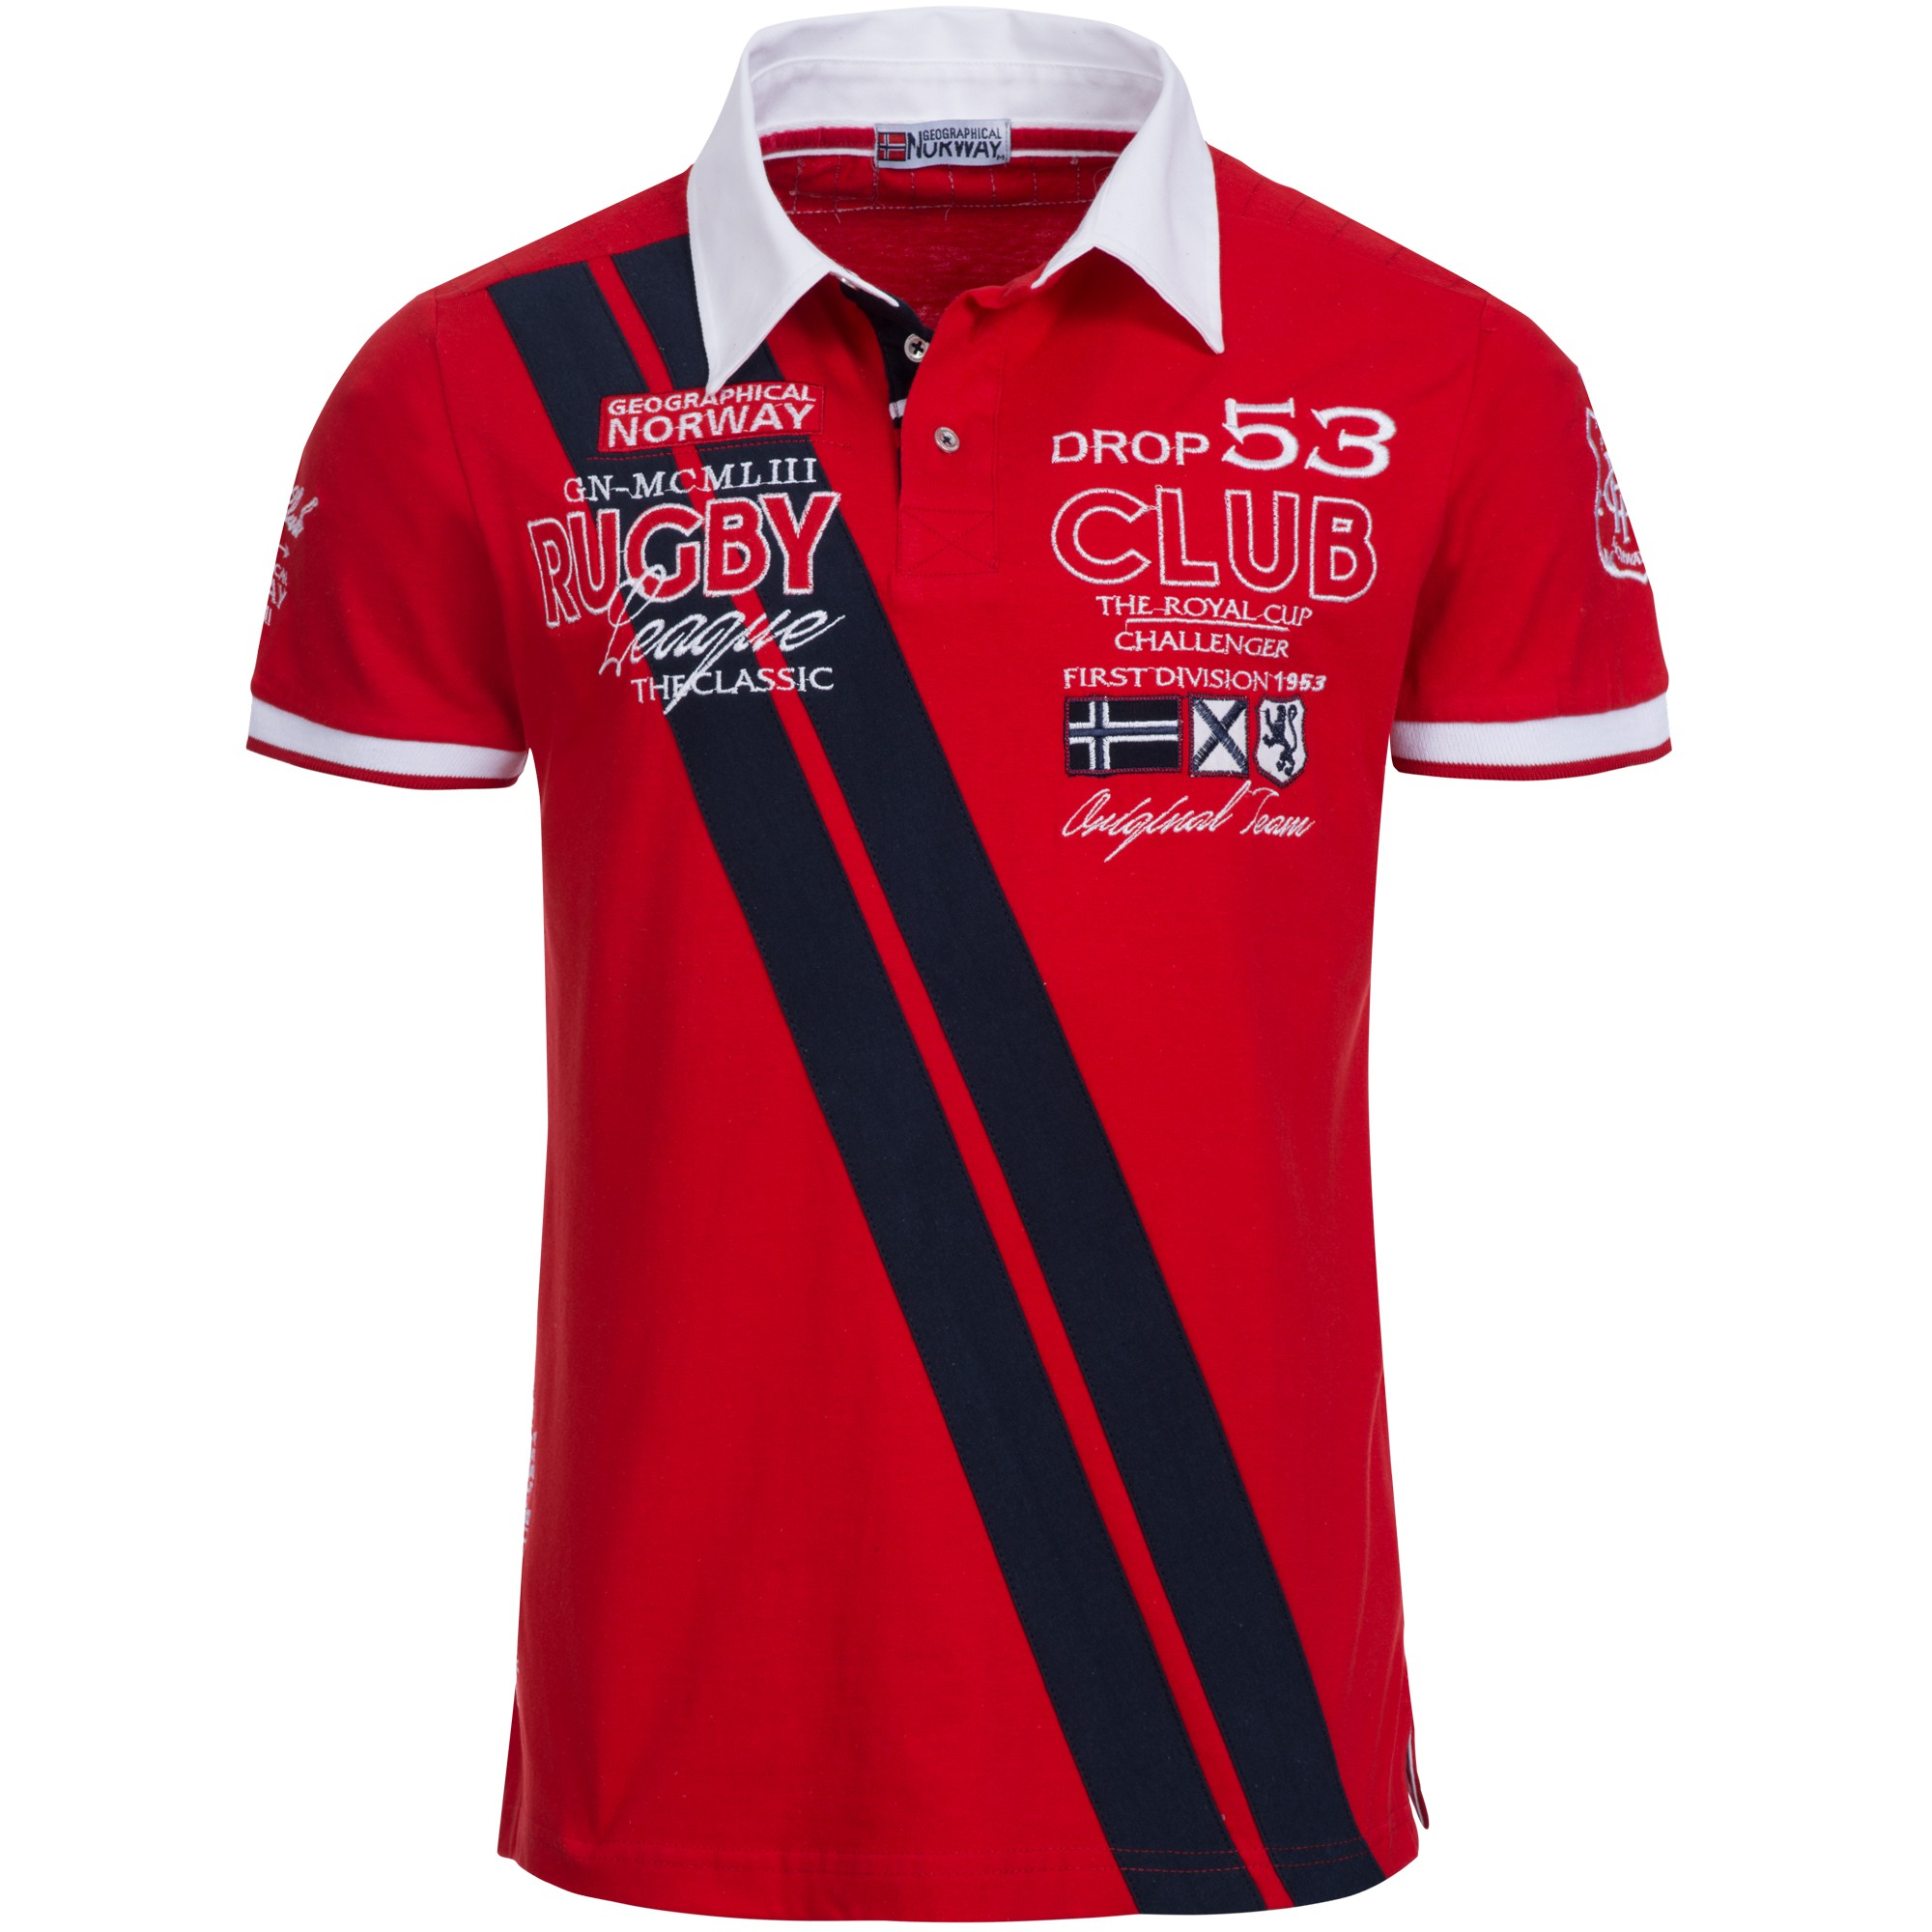 geographical norway kook poloshirt polo shirt t shirt hemd s xxxl ebay. Black Bedroom Furniture Sets. Home Design Ideas